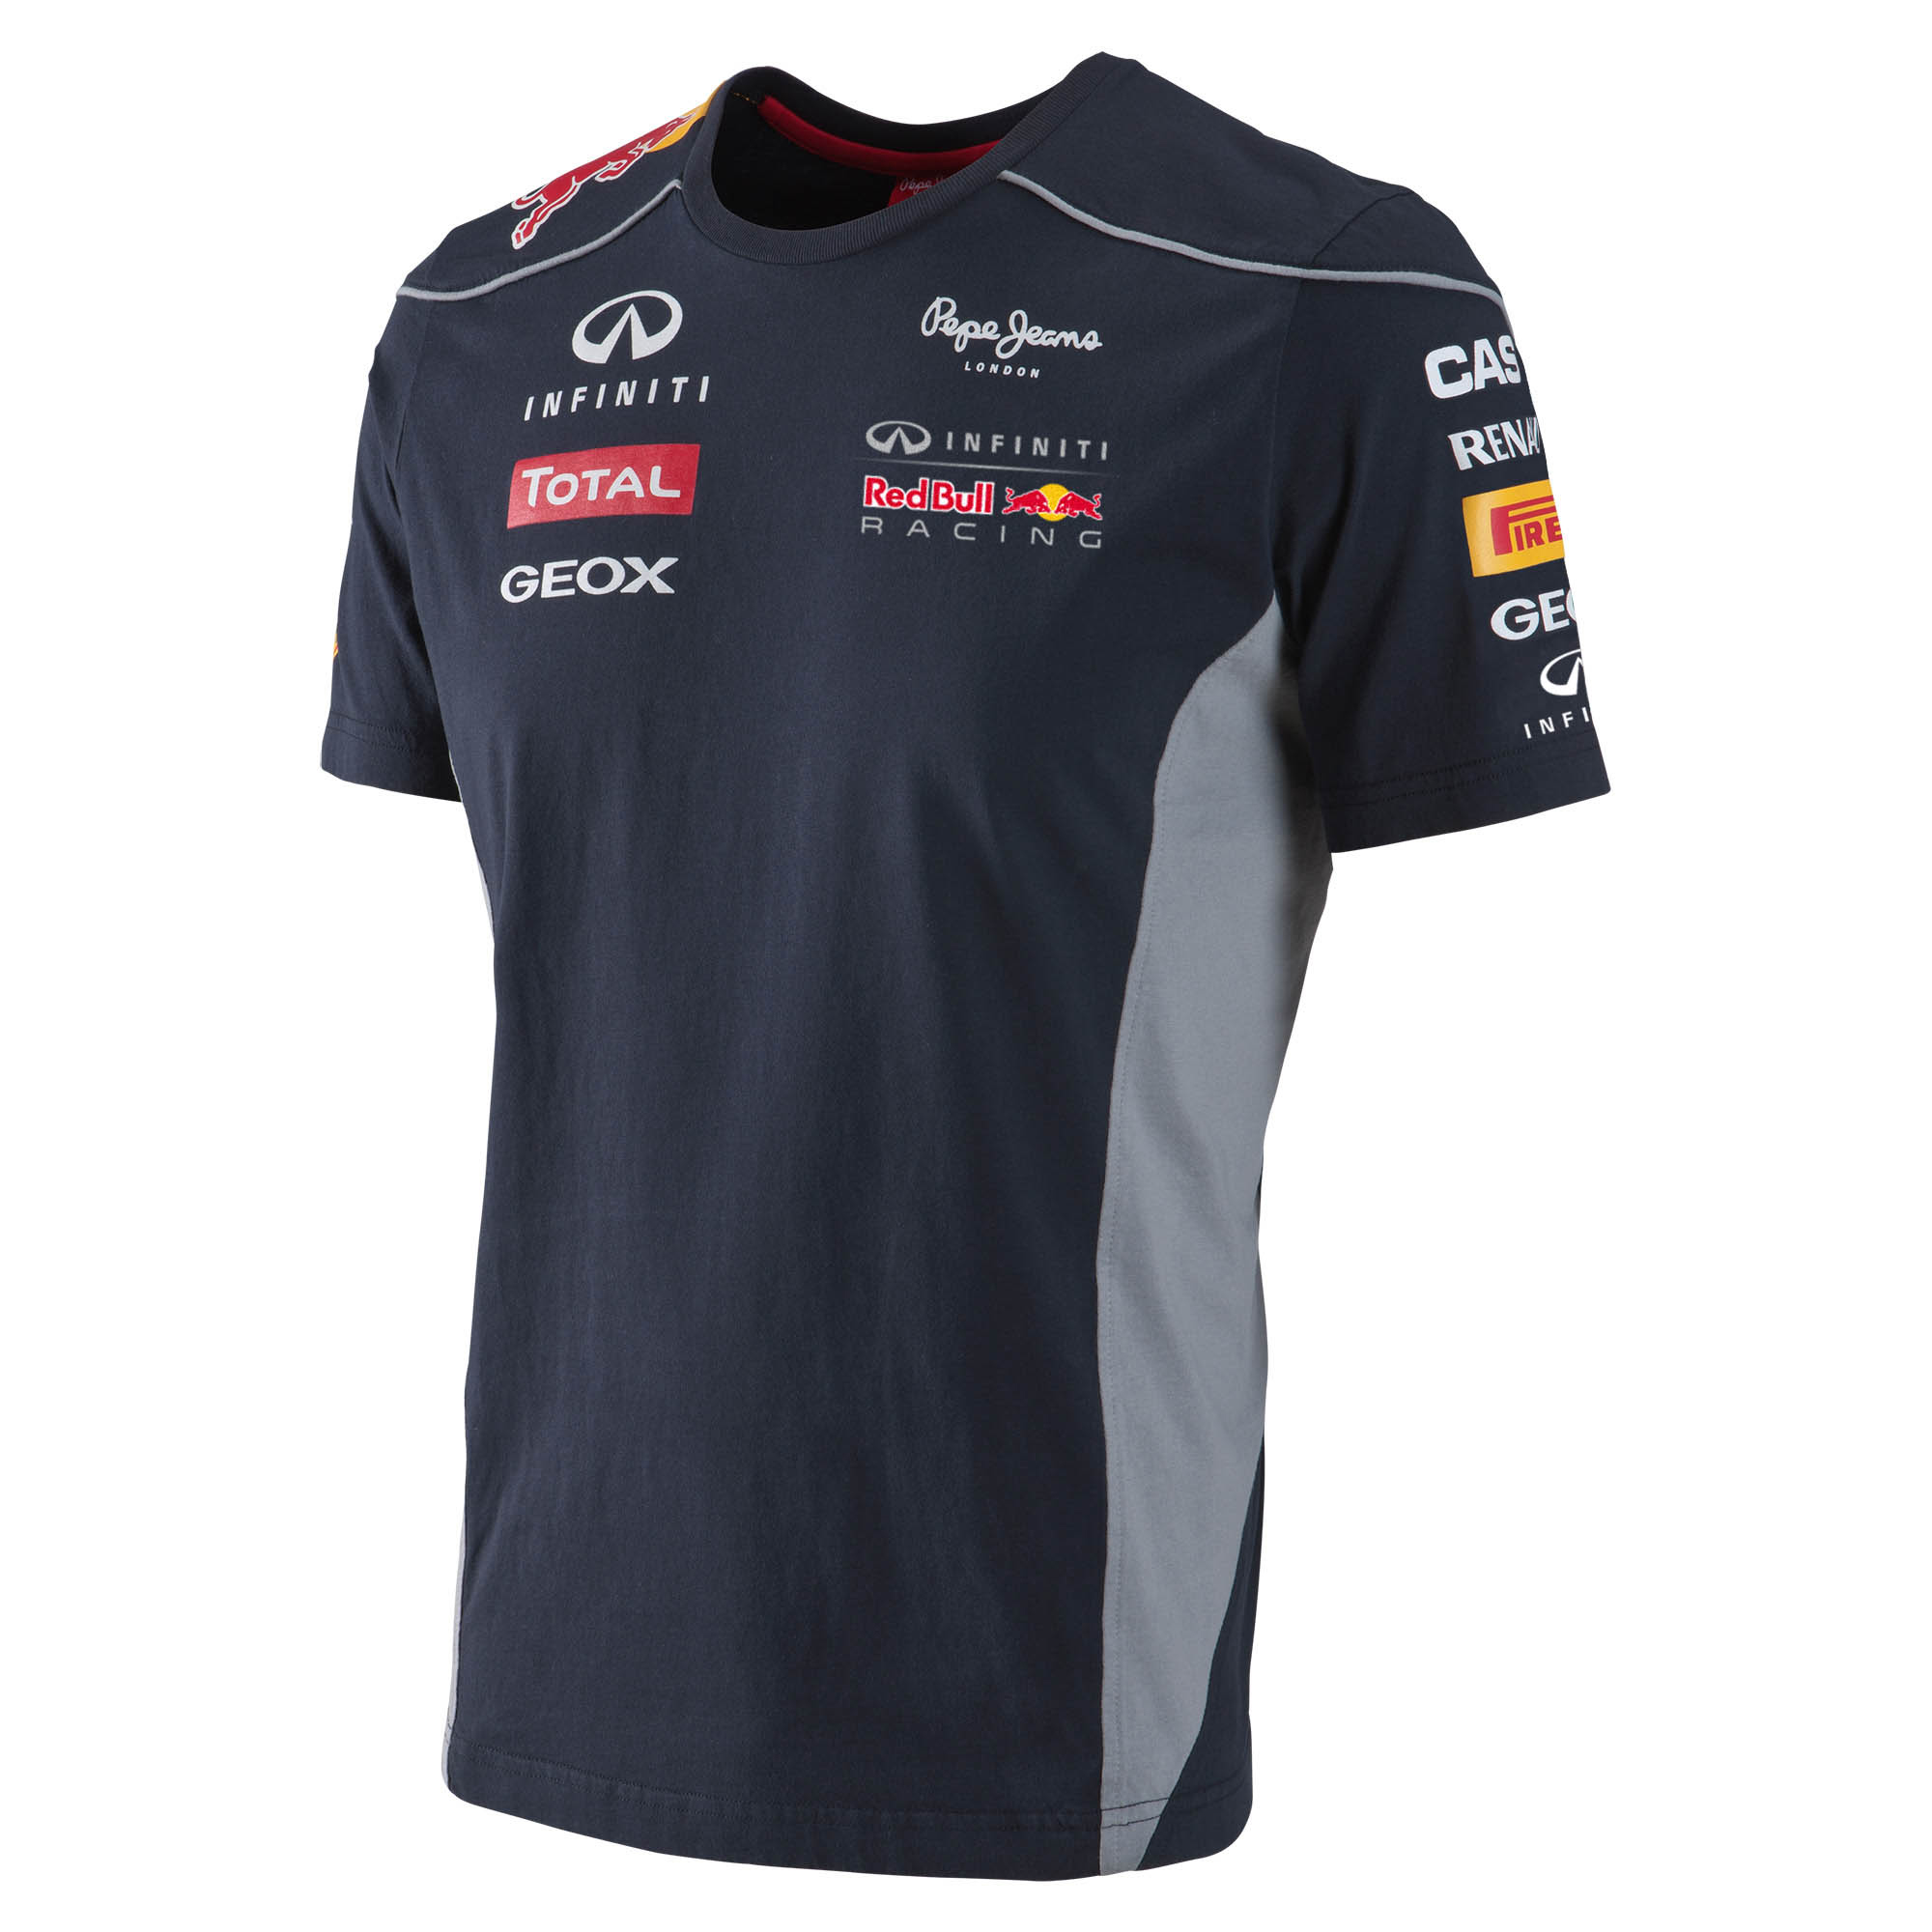 Infiniti Red Bull Racing 2013 Official Teamline T-Shirt